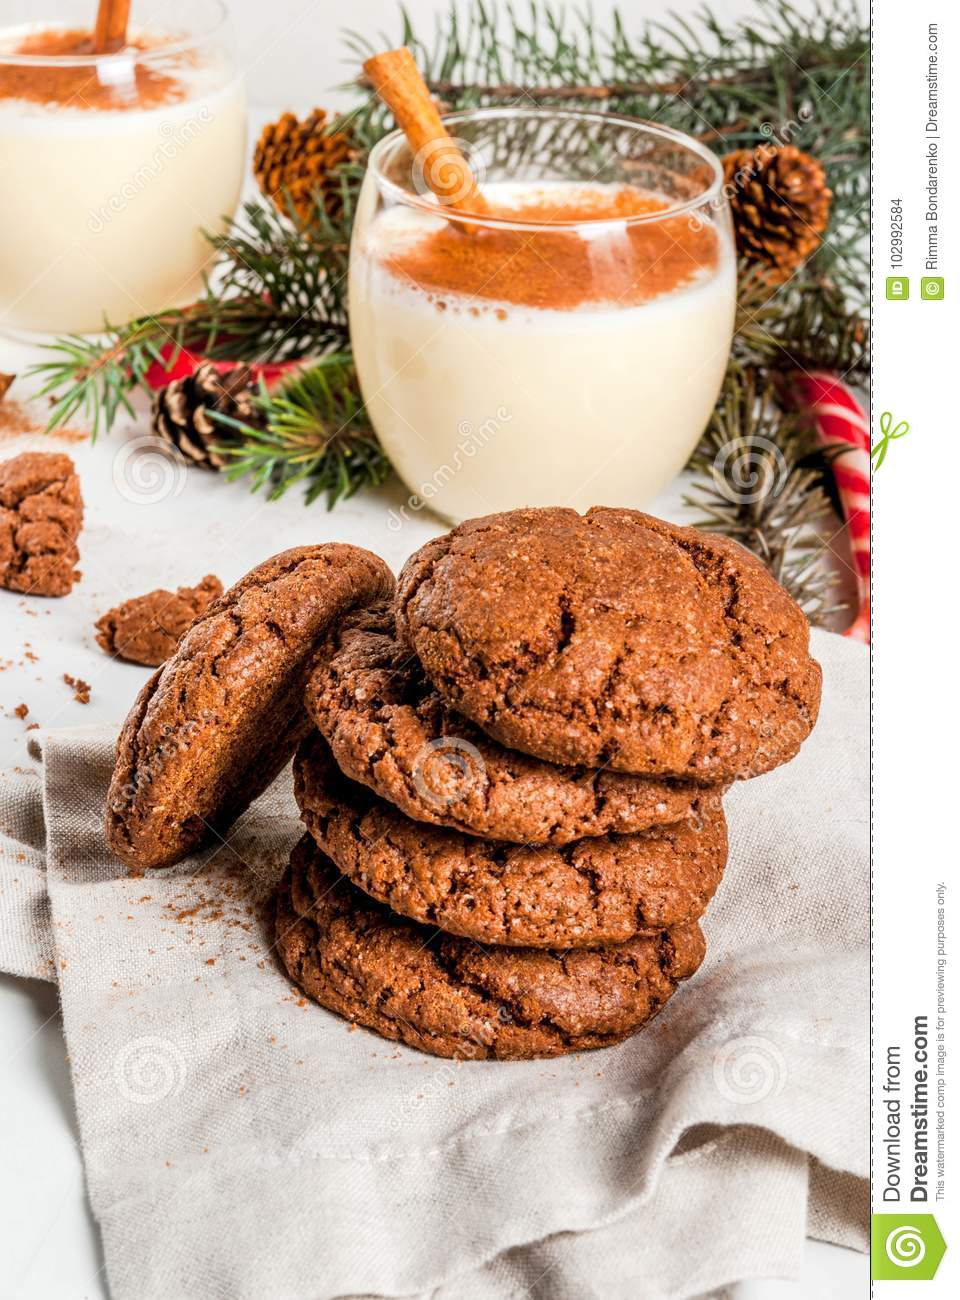 Chocolate Crinkle Cookies For Christmas Stock Photo Image Of